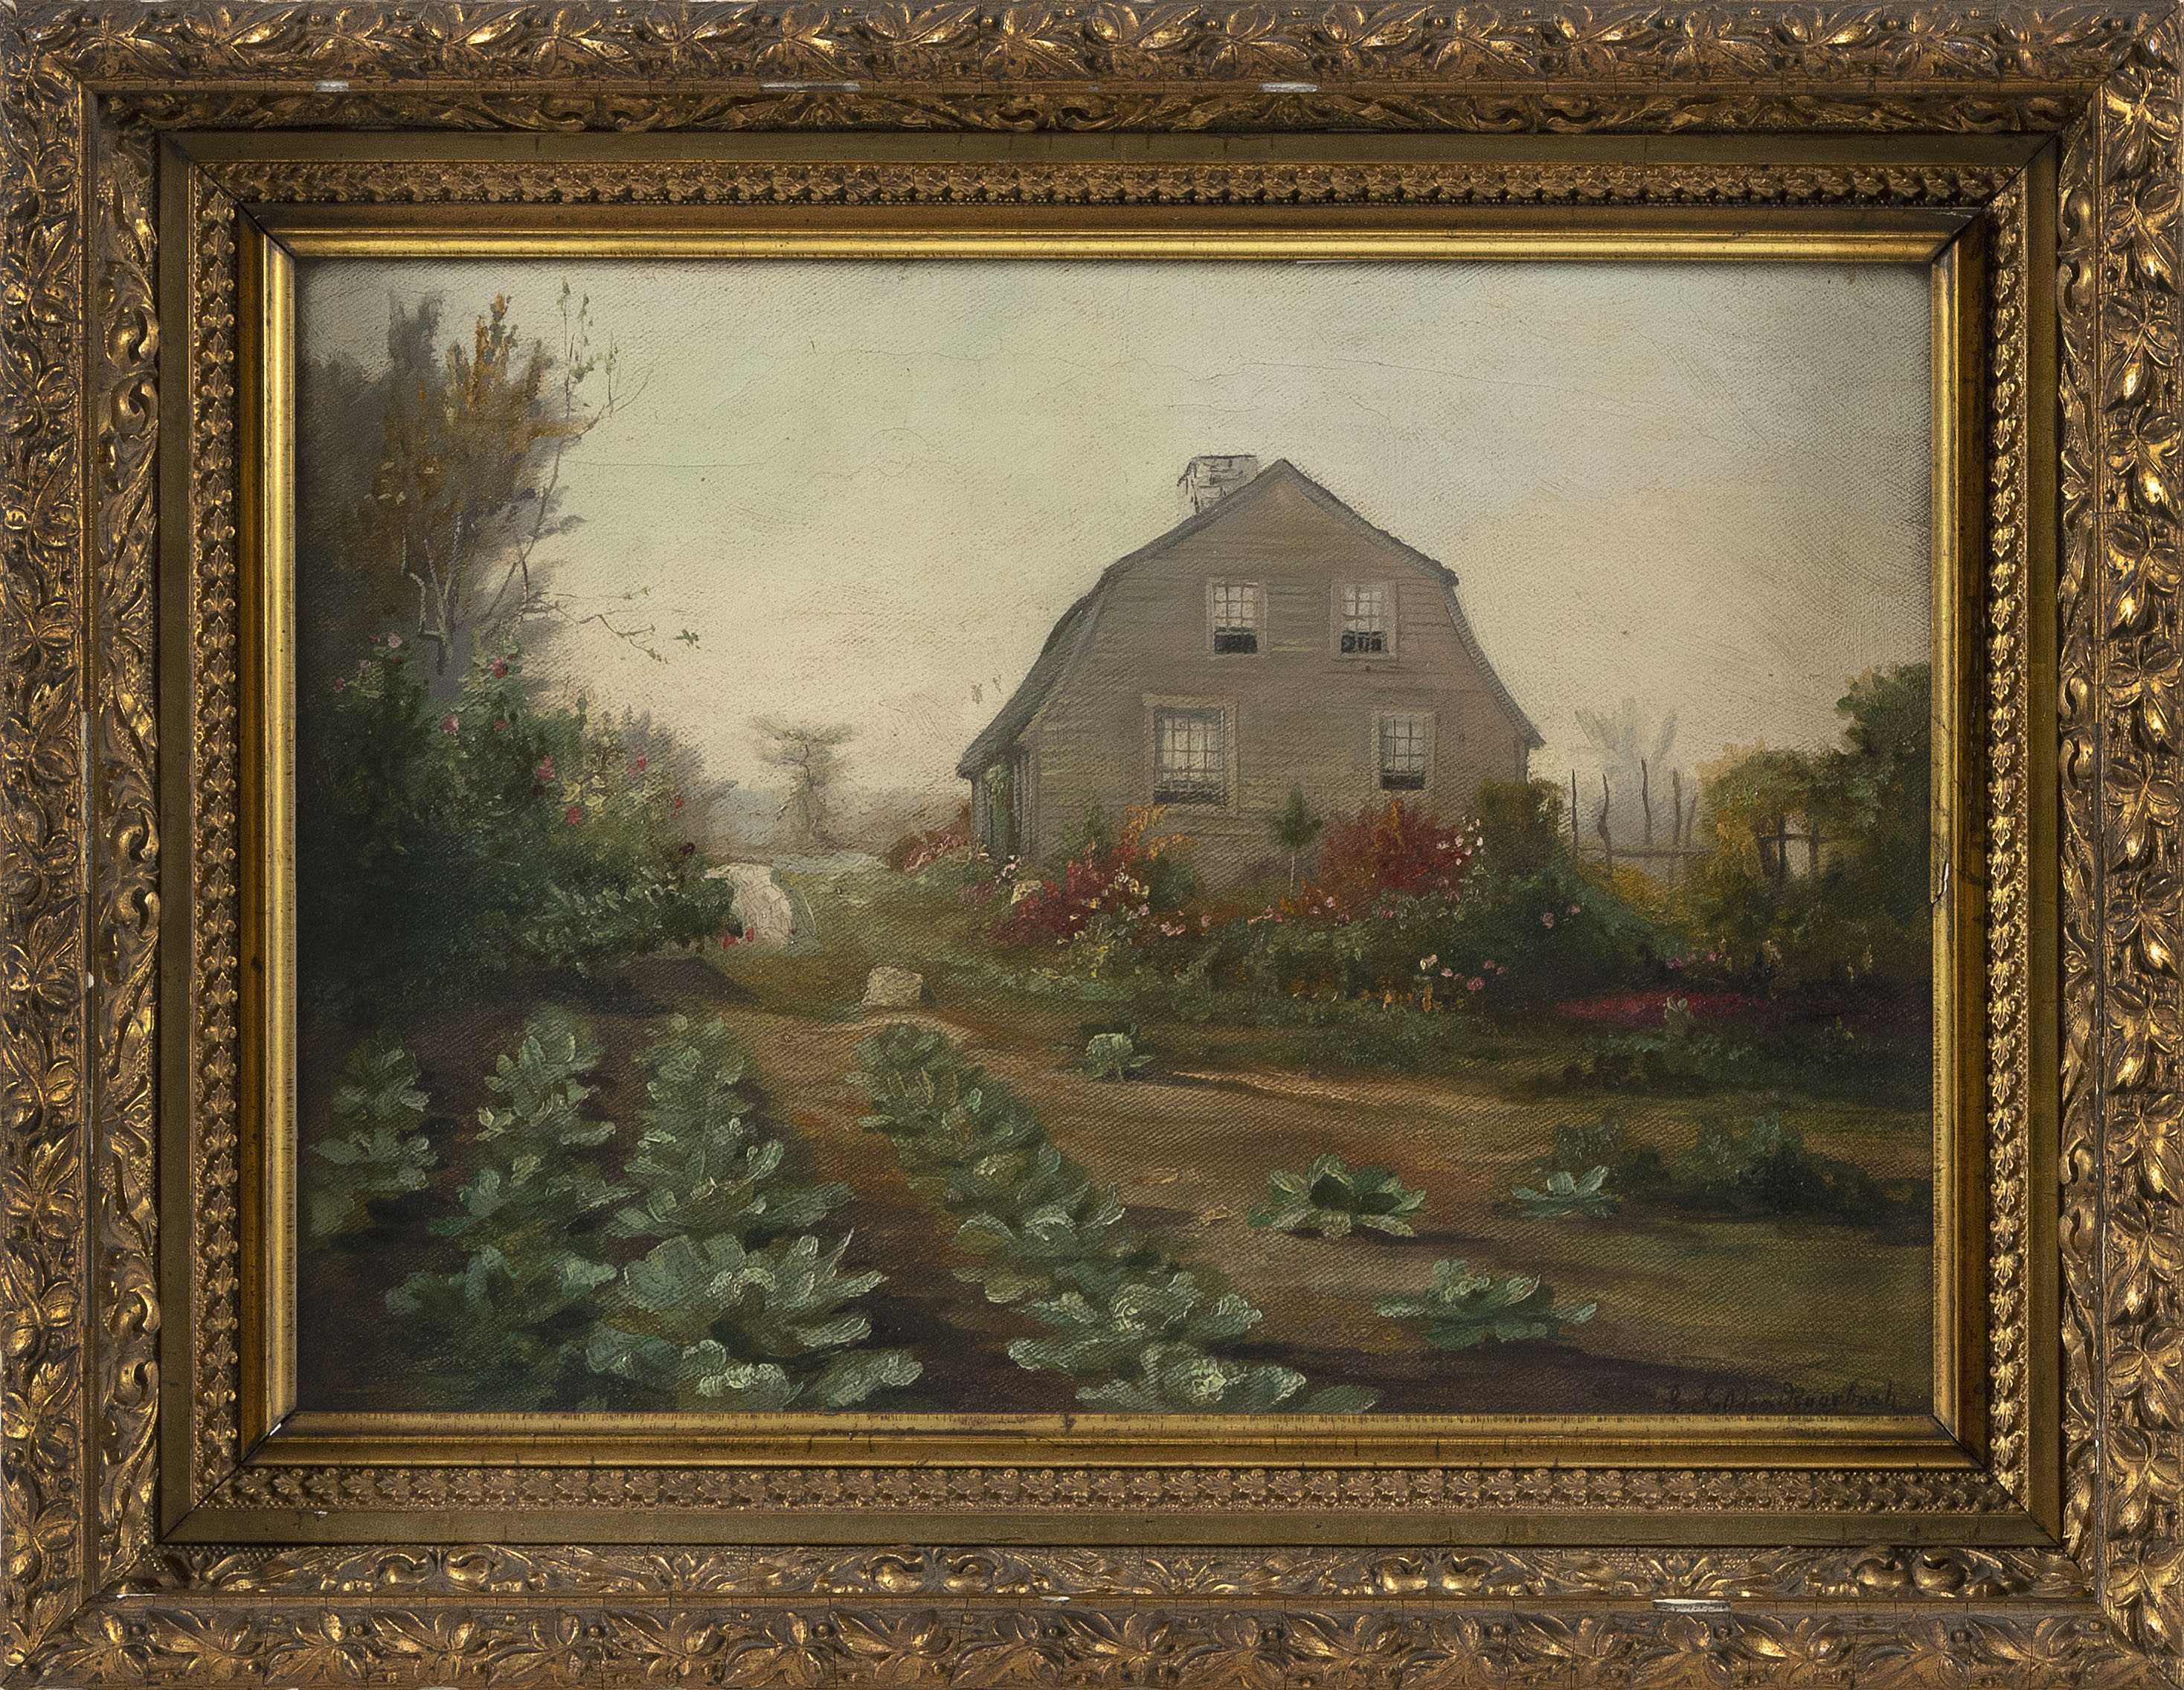 """GEORGE SELDON ROORBACH (New York/New Jersey, 1860-1930), Gambrel-style cottage and gardens., Oil on canvas 10"""" x 14"""". Framed 14"""" x 18""""."""